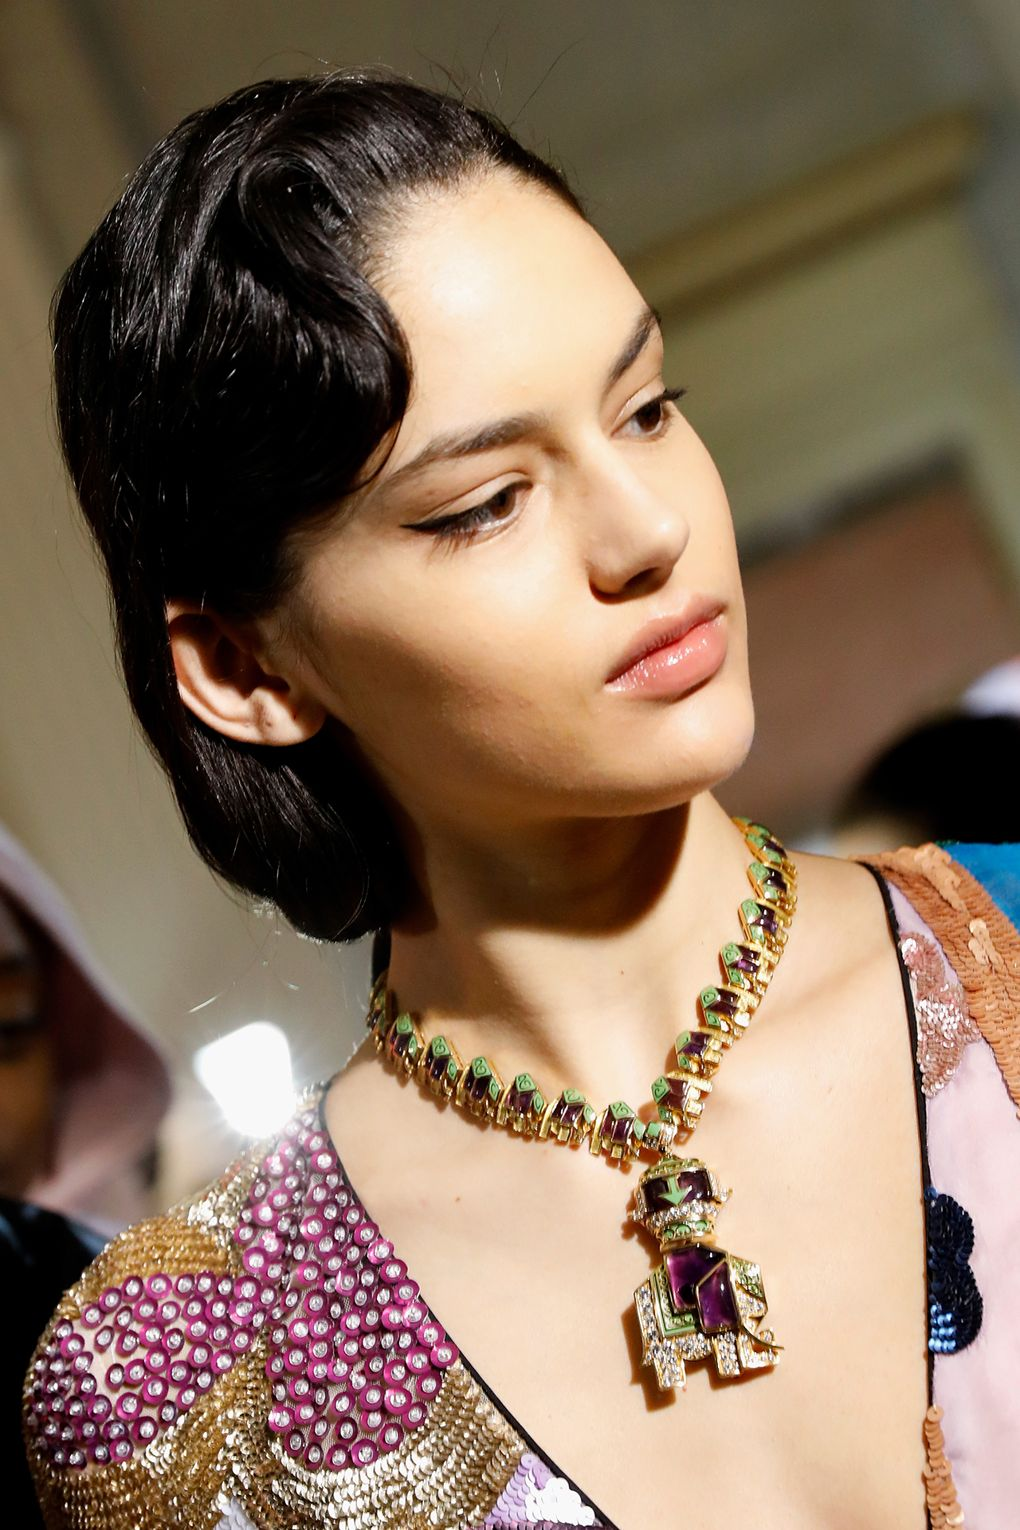 Backstage Emilio Pucci Beauty Mainstyles_01.jpg